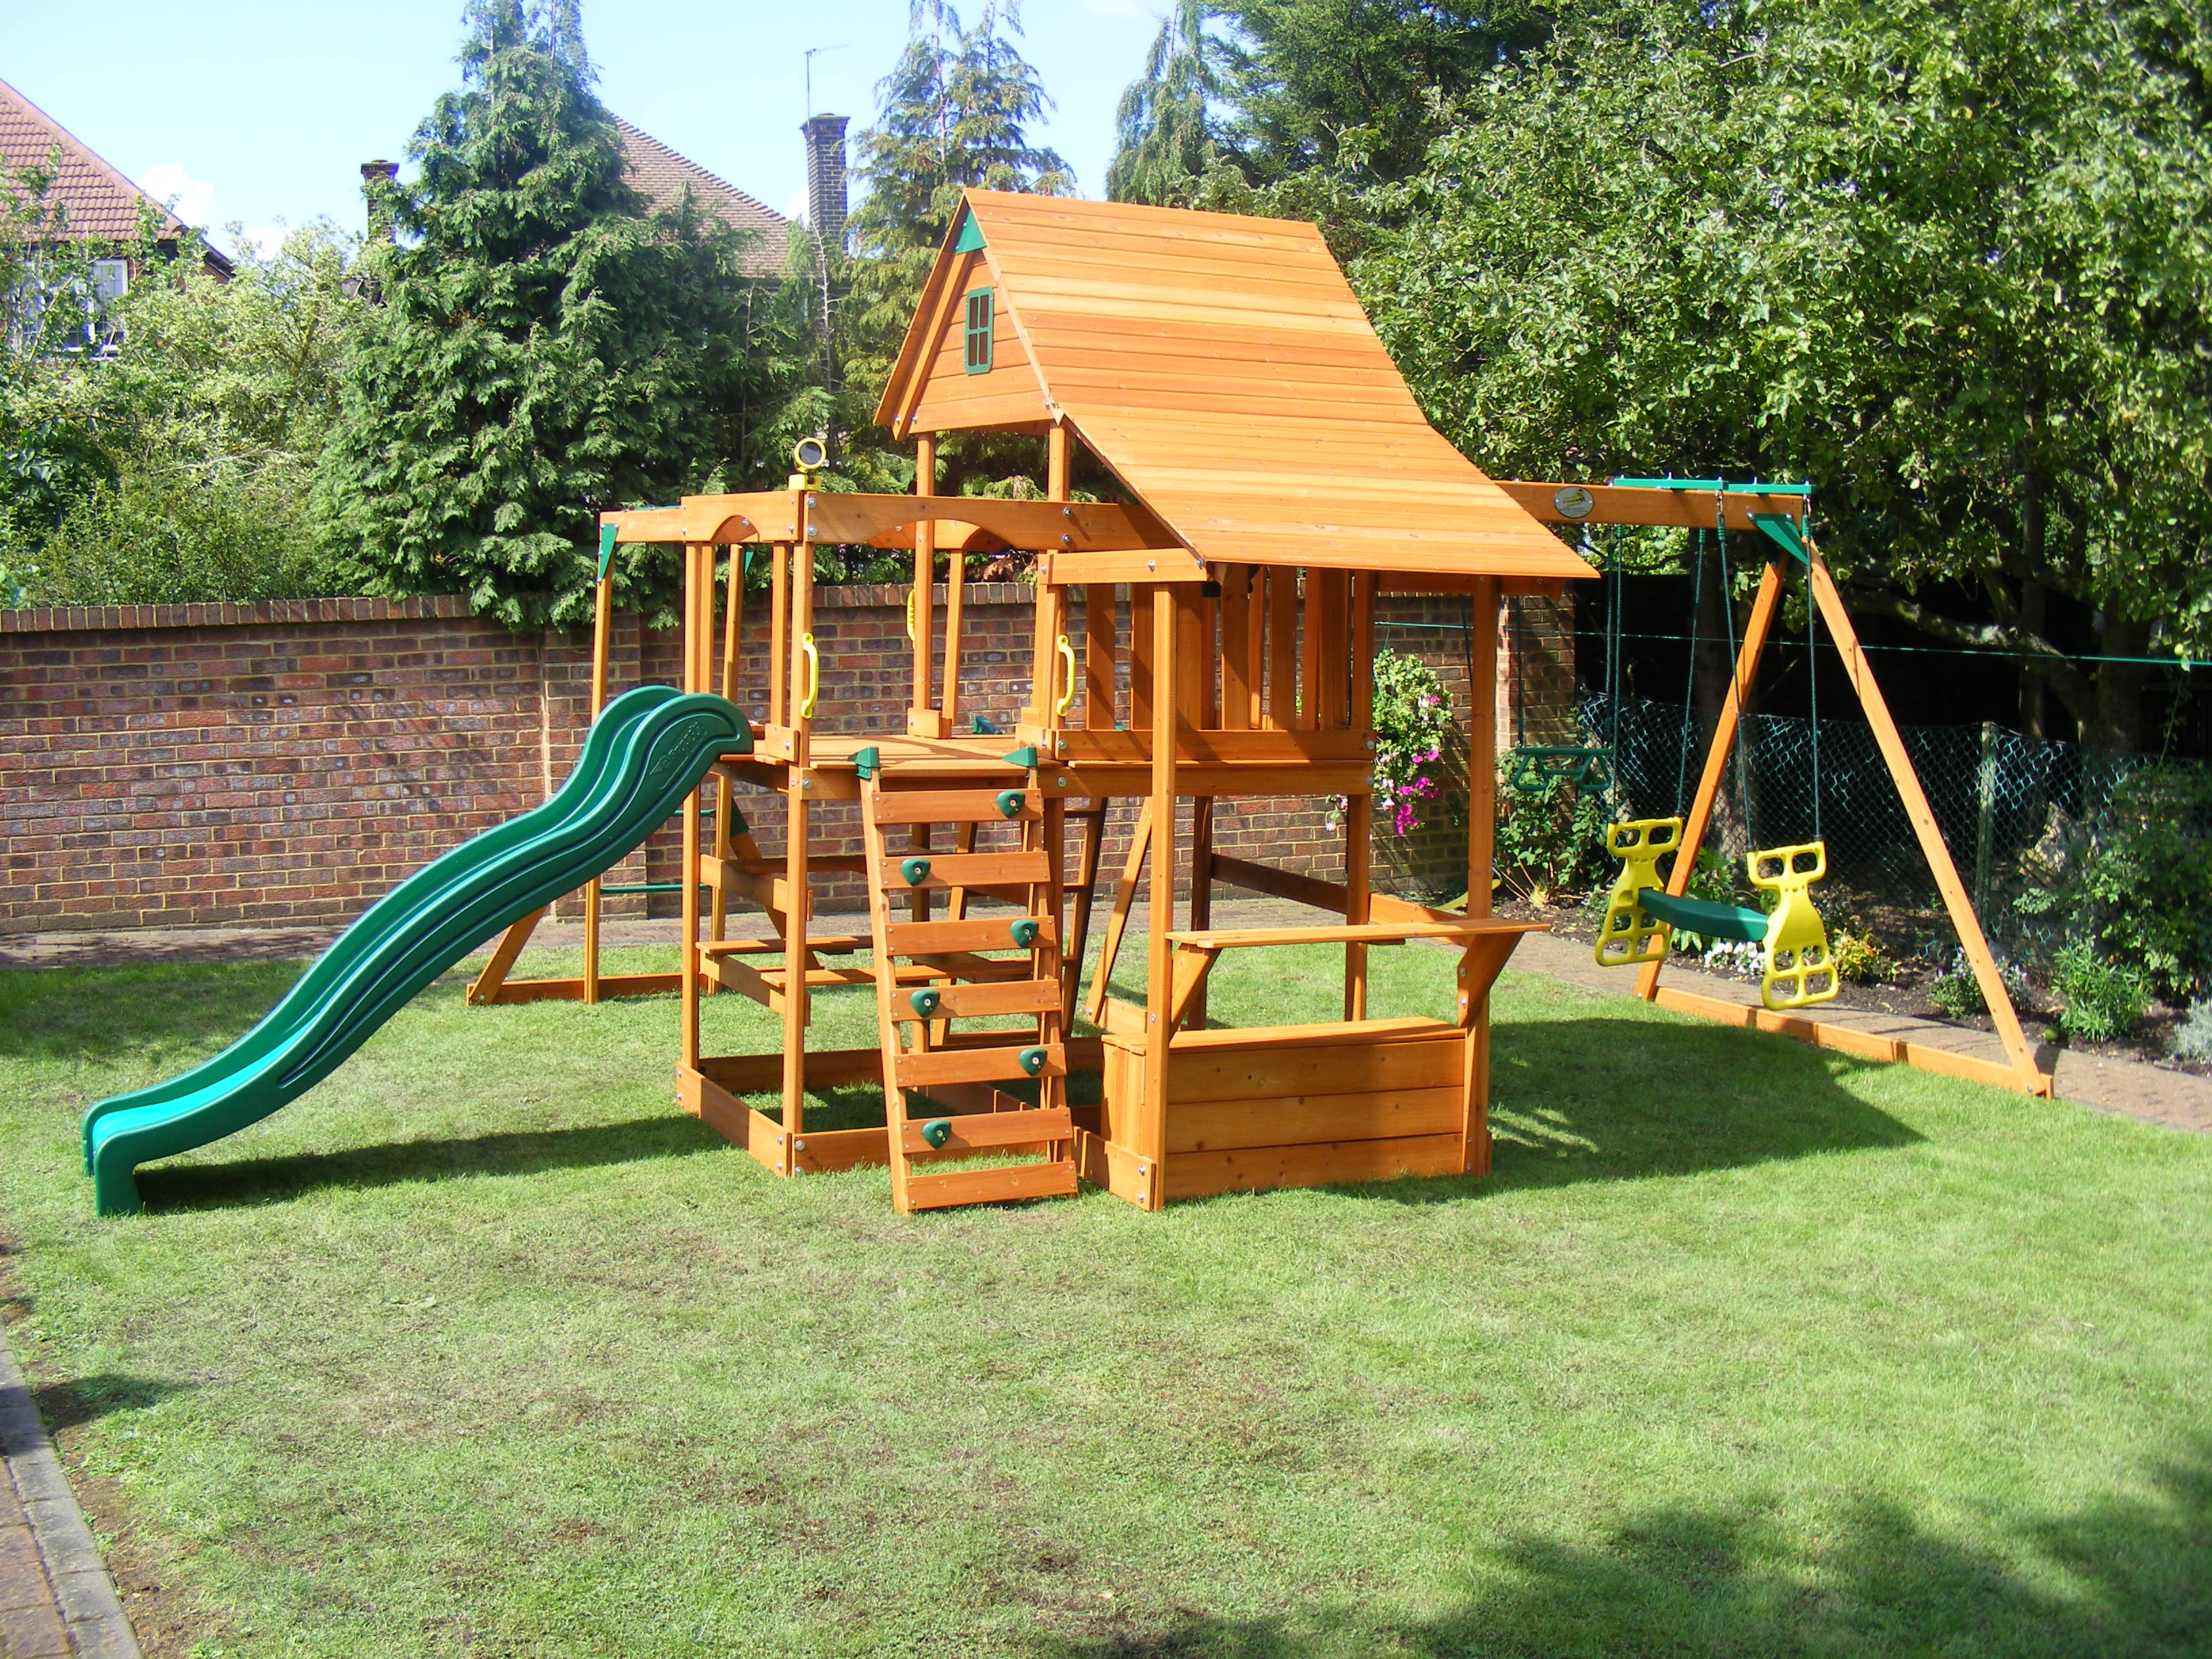 april 2011 archives climbing frame installer. Black Bedroom Furniture Sets. Home Design Ideas